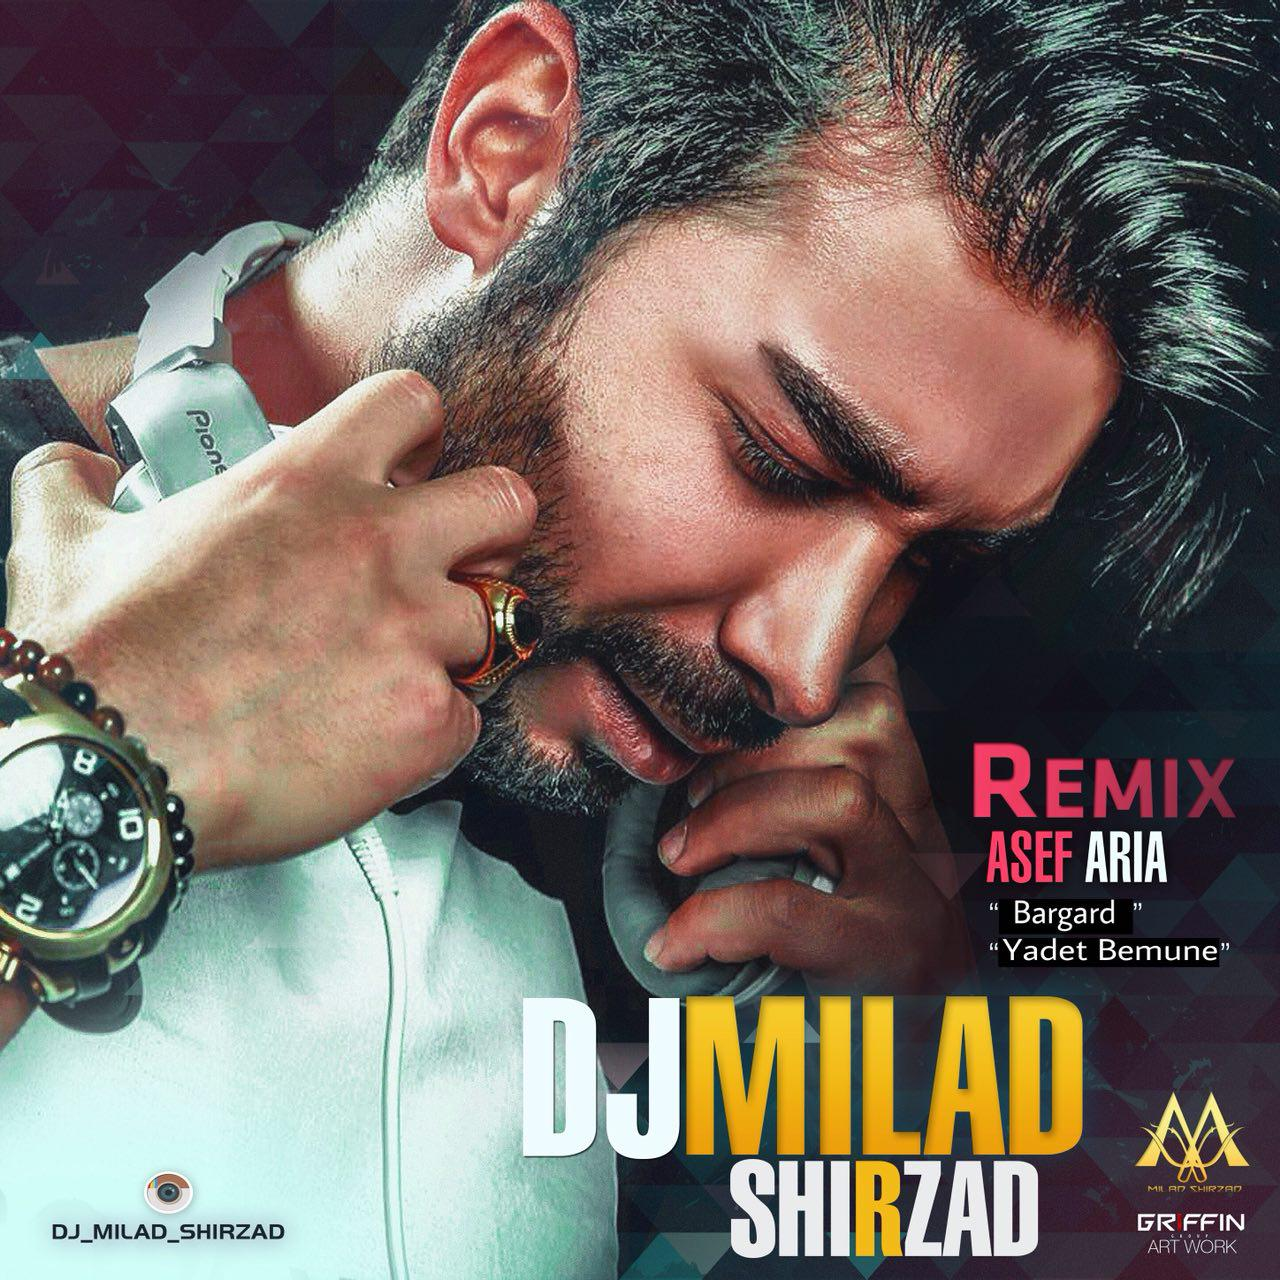 Dj Milad Shirzad – Asef Aria Remix (Bargard and Yadet Bemune)